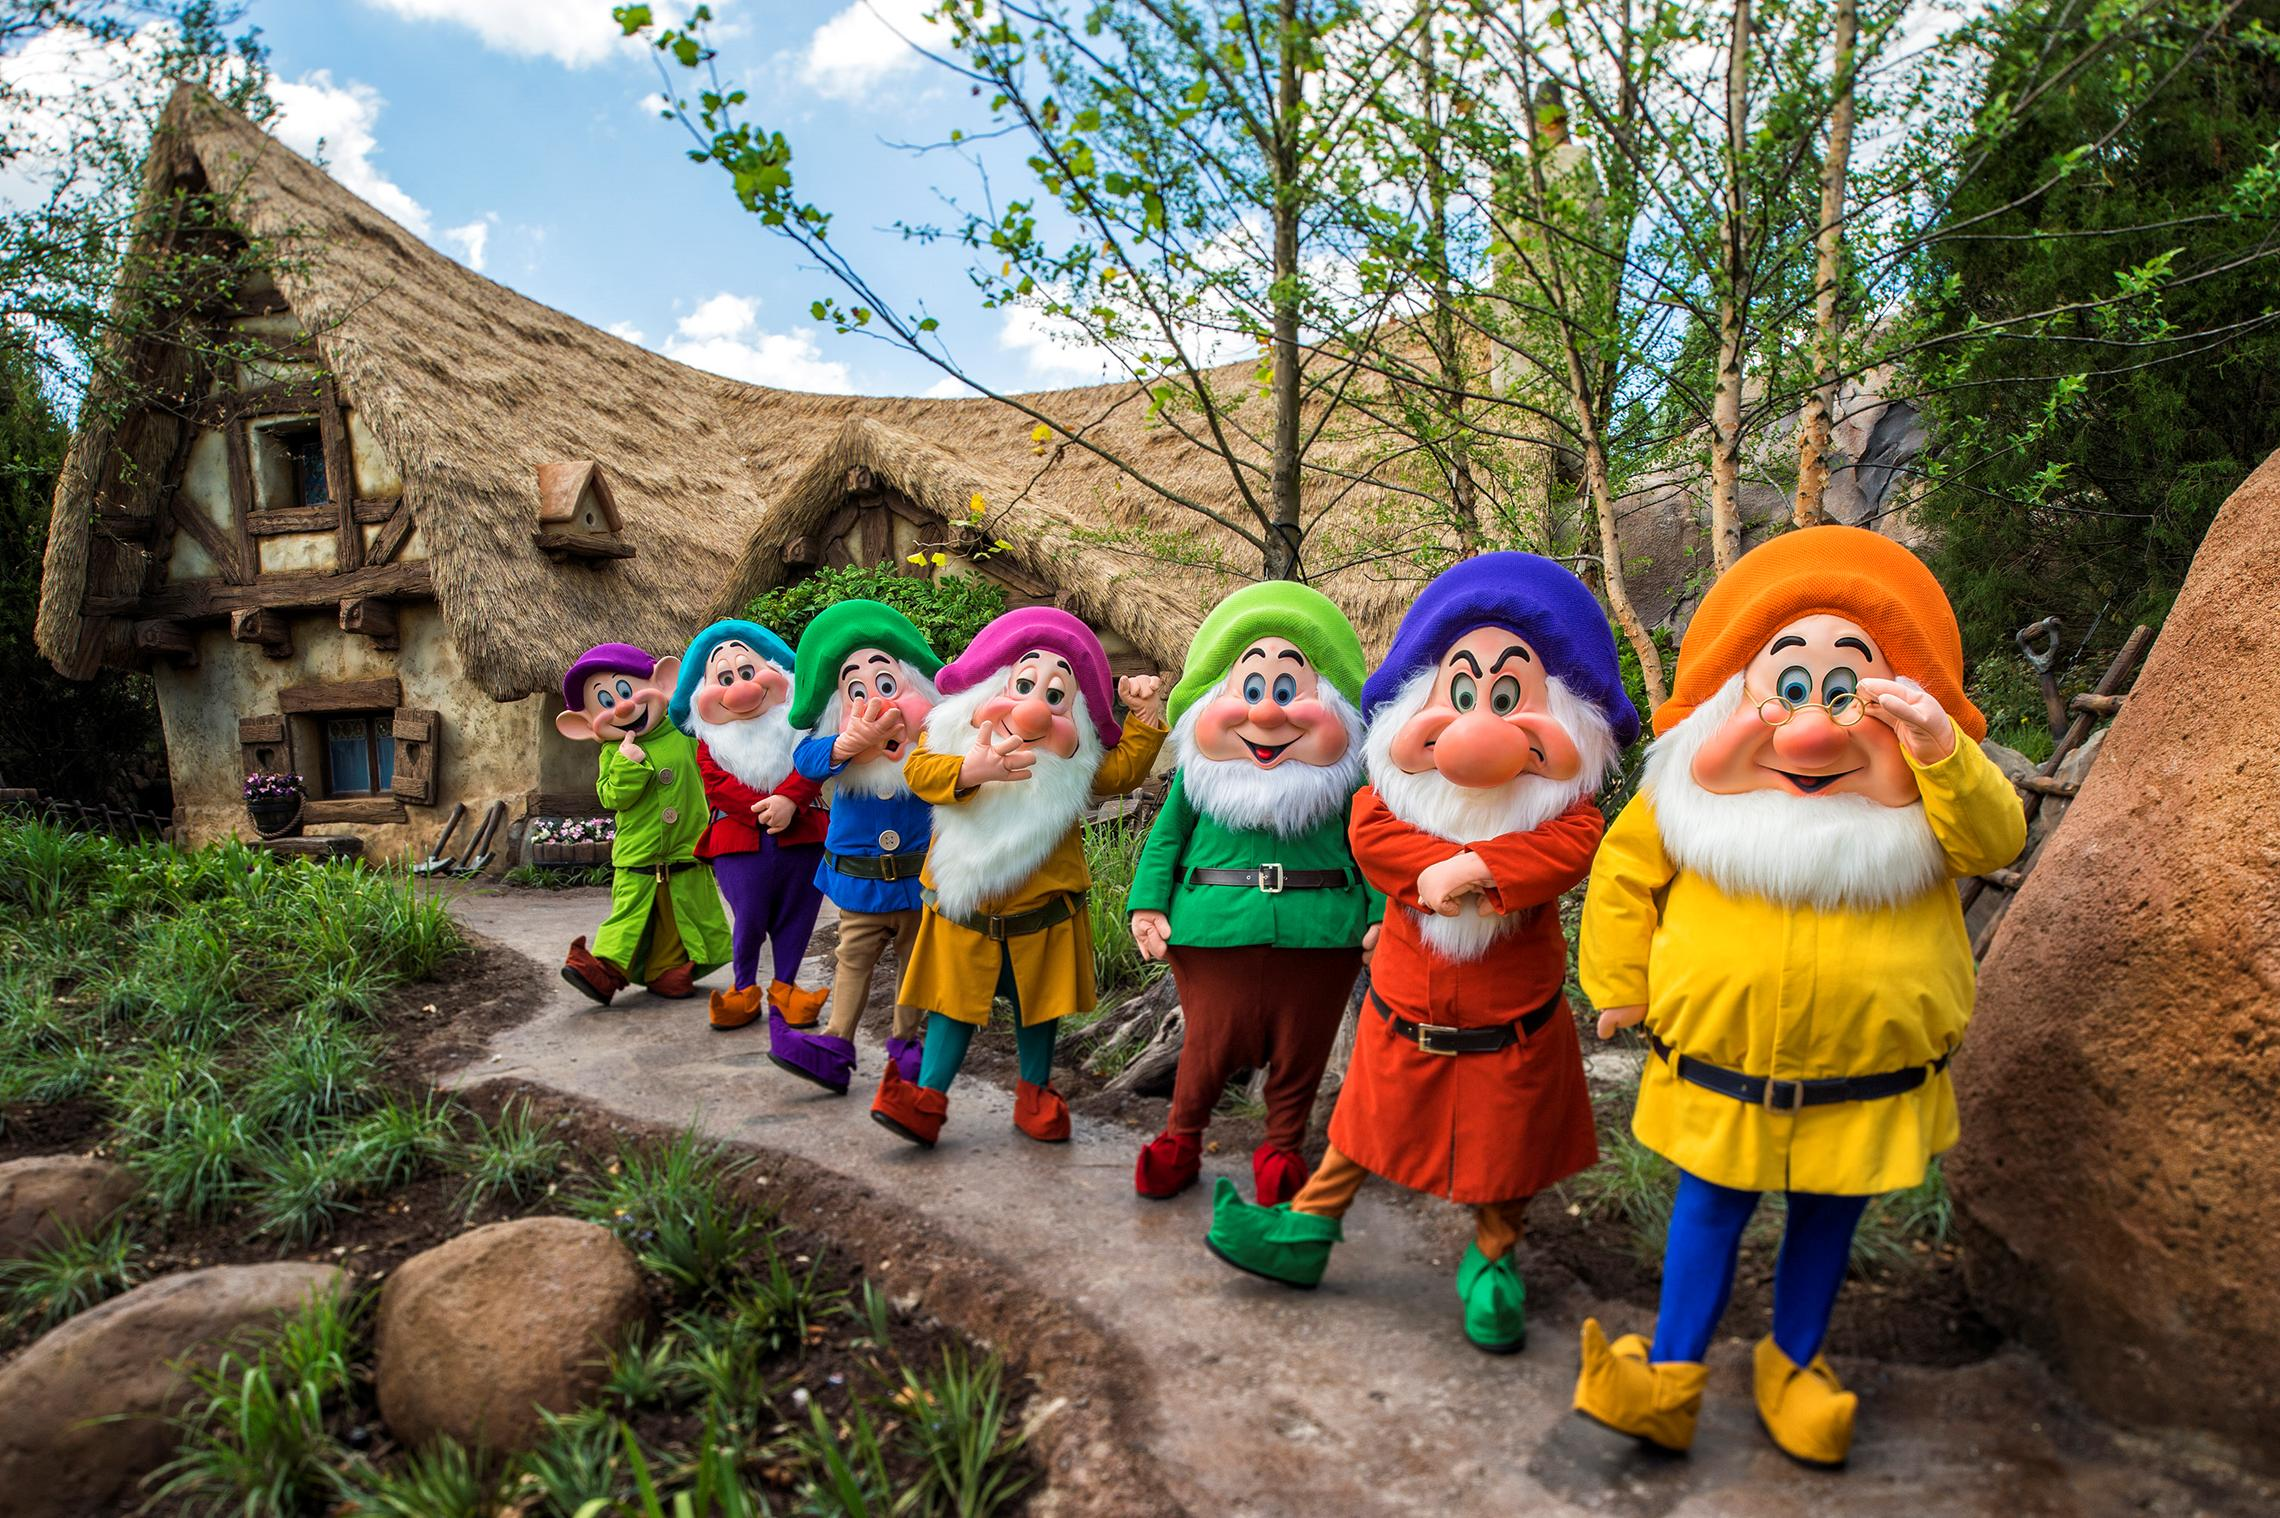 Seven Dwarfs cottage